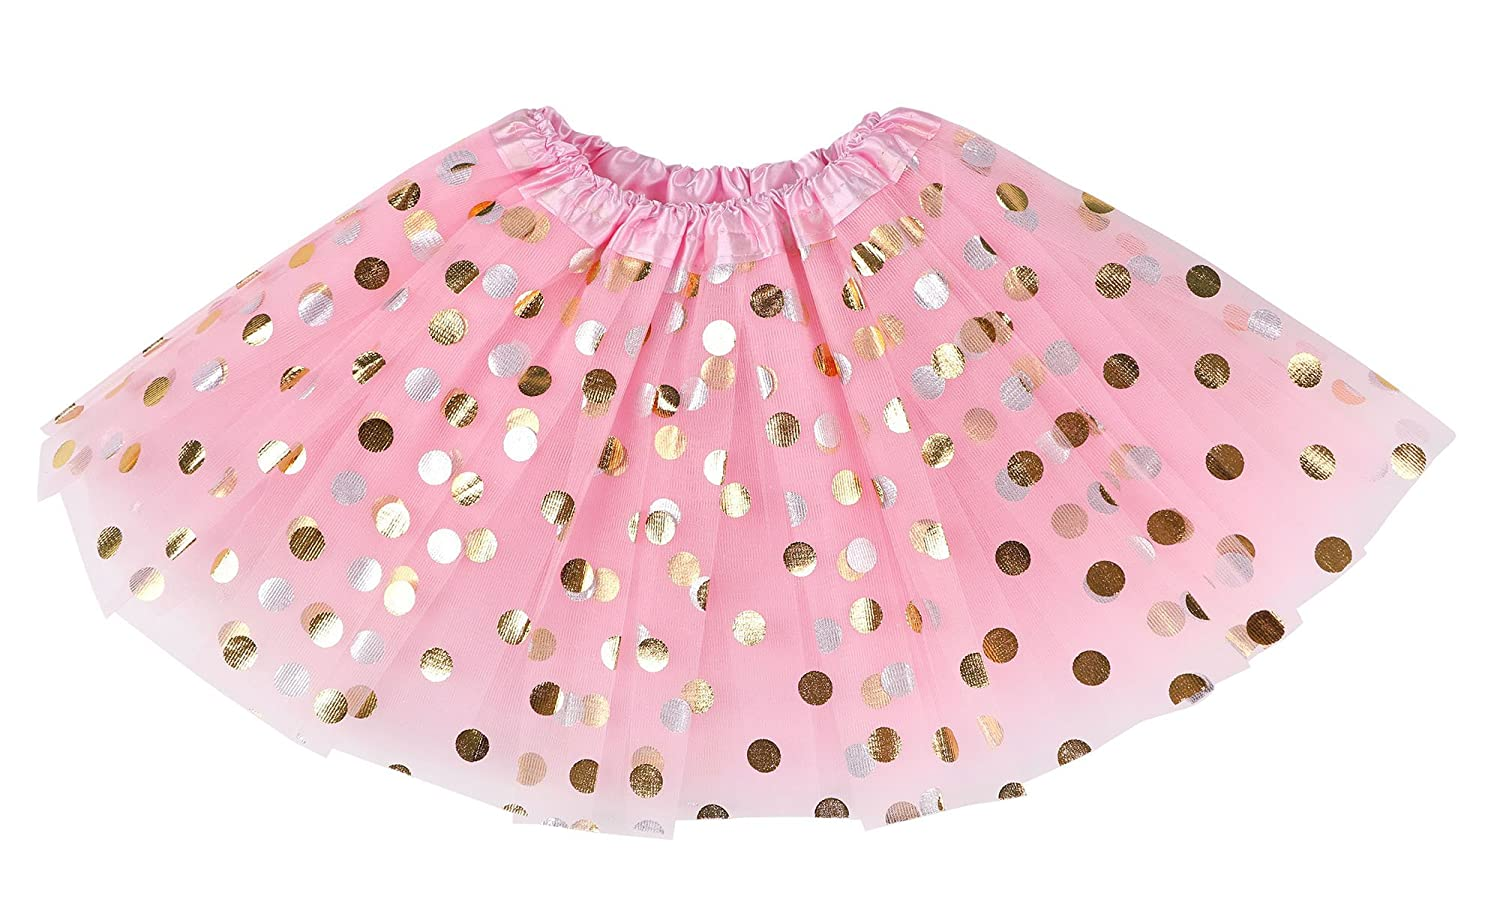 40% off Toddler and Girls 4 Layered Pull-On Tulle Tutu Skirt with Polka-Dot Foil Designs